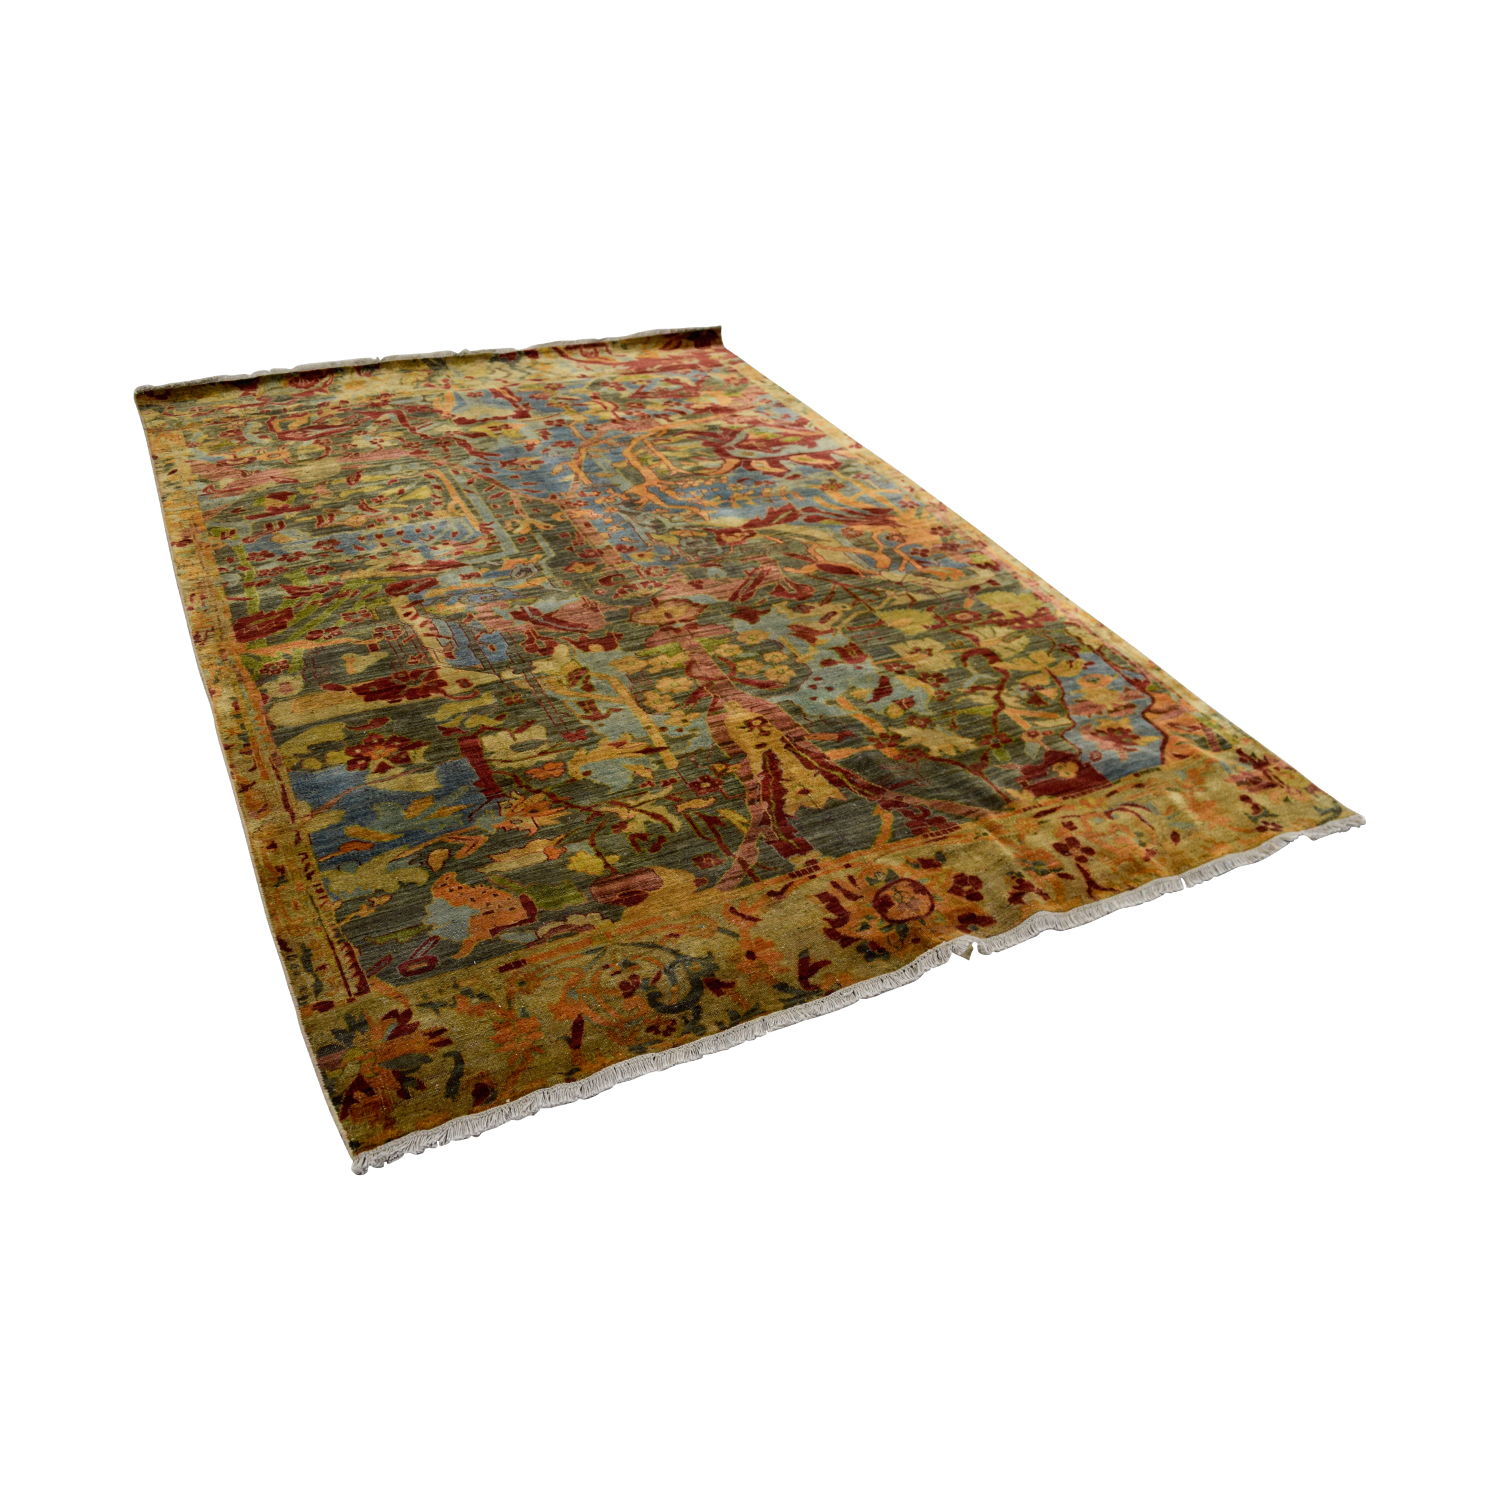 Obeetee Obeetee Hand Knotted Red and Green Floral Wool Rug nj